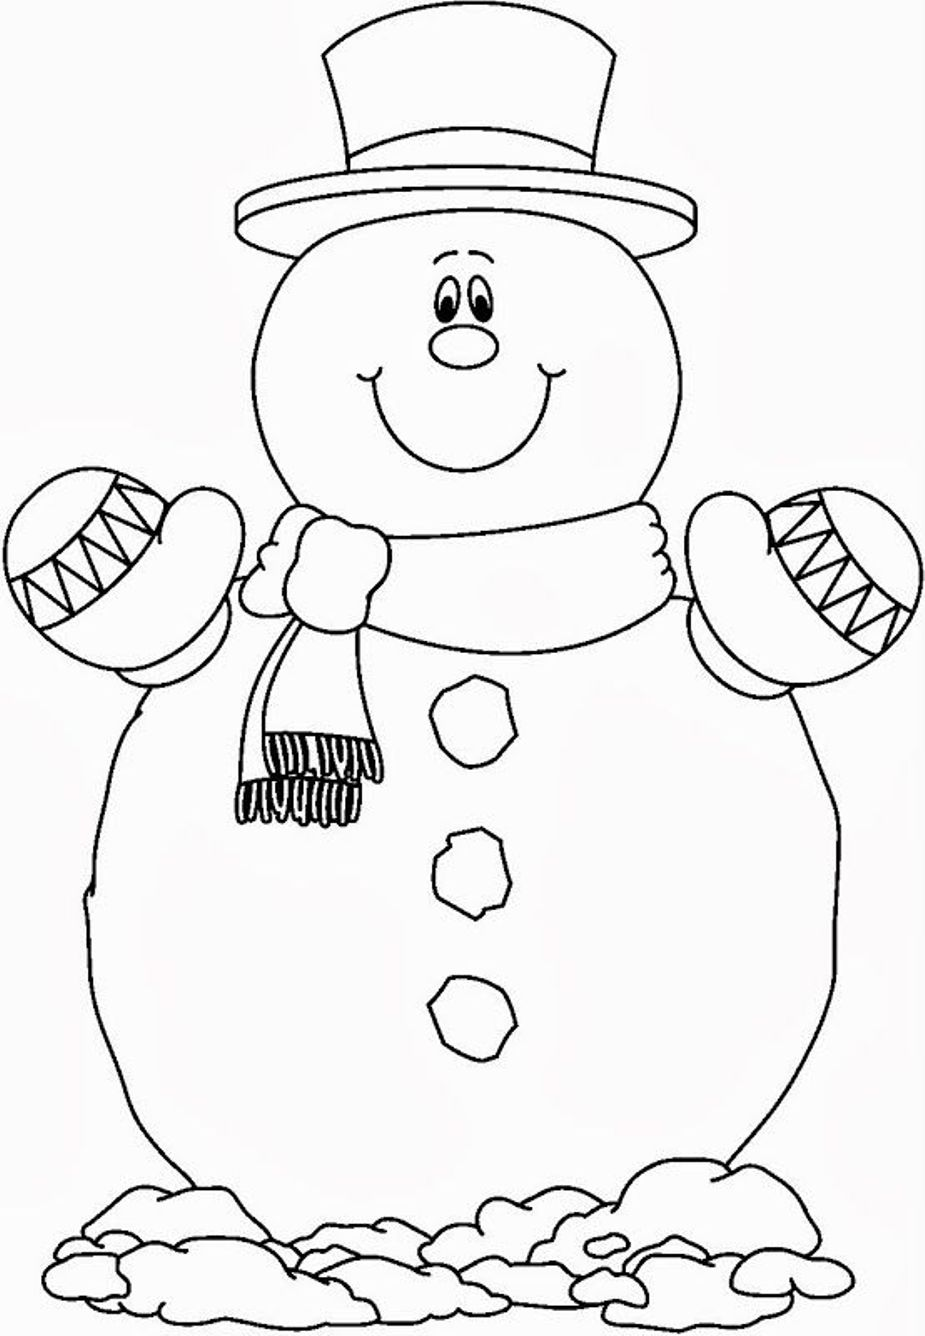 925x1336 Coloring Pages Shapes